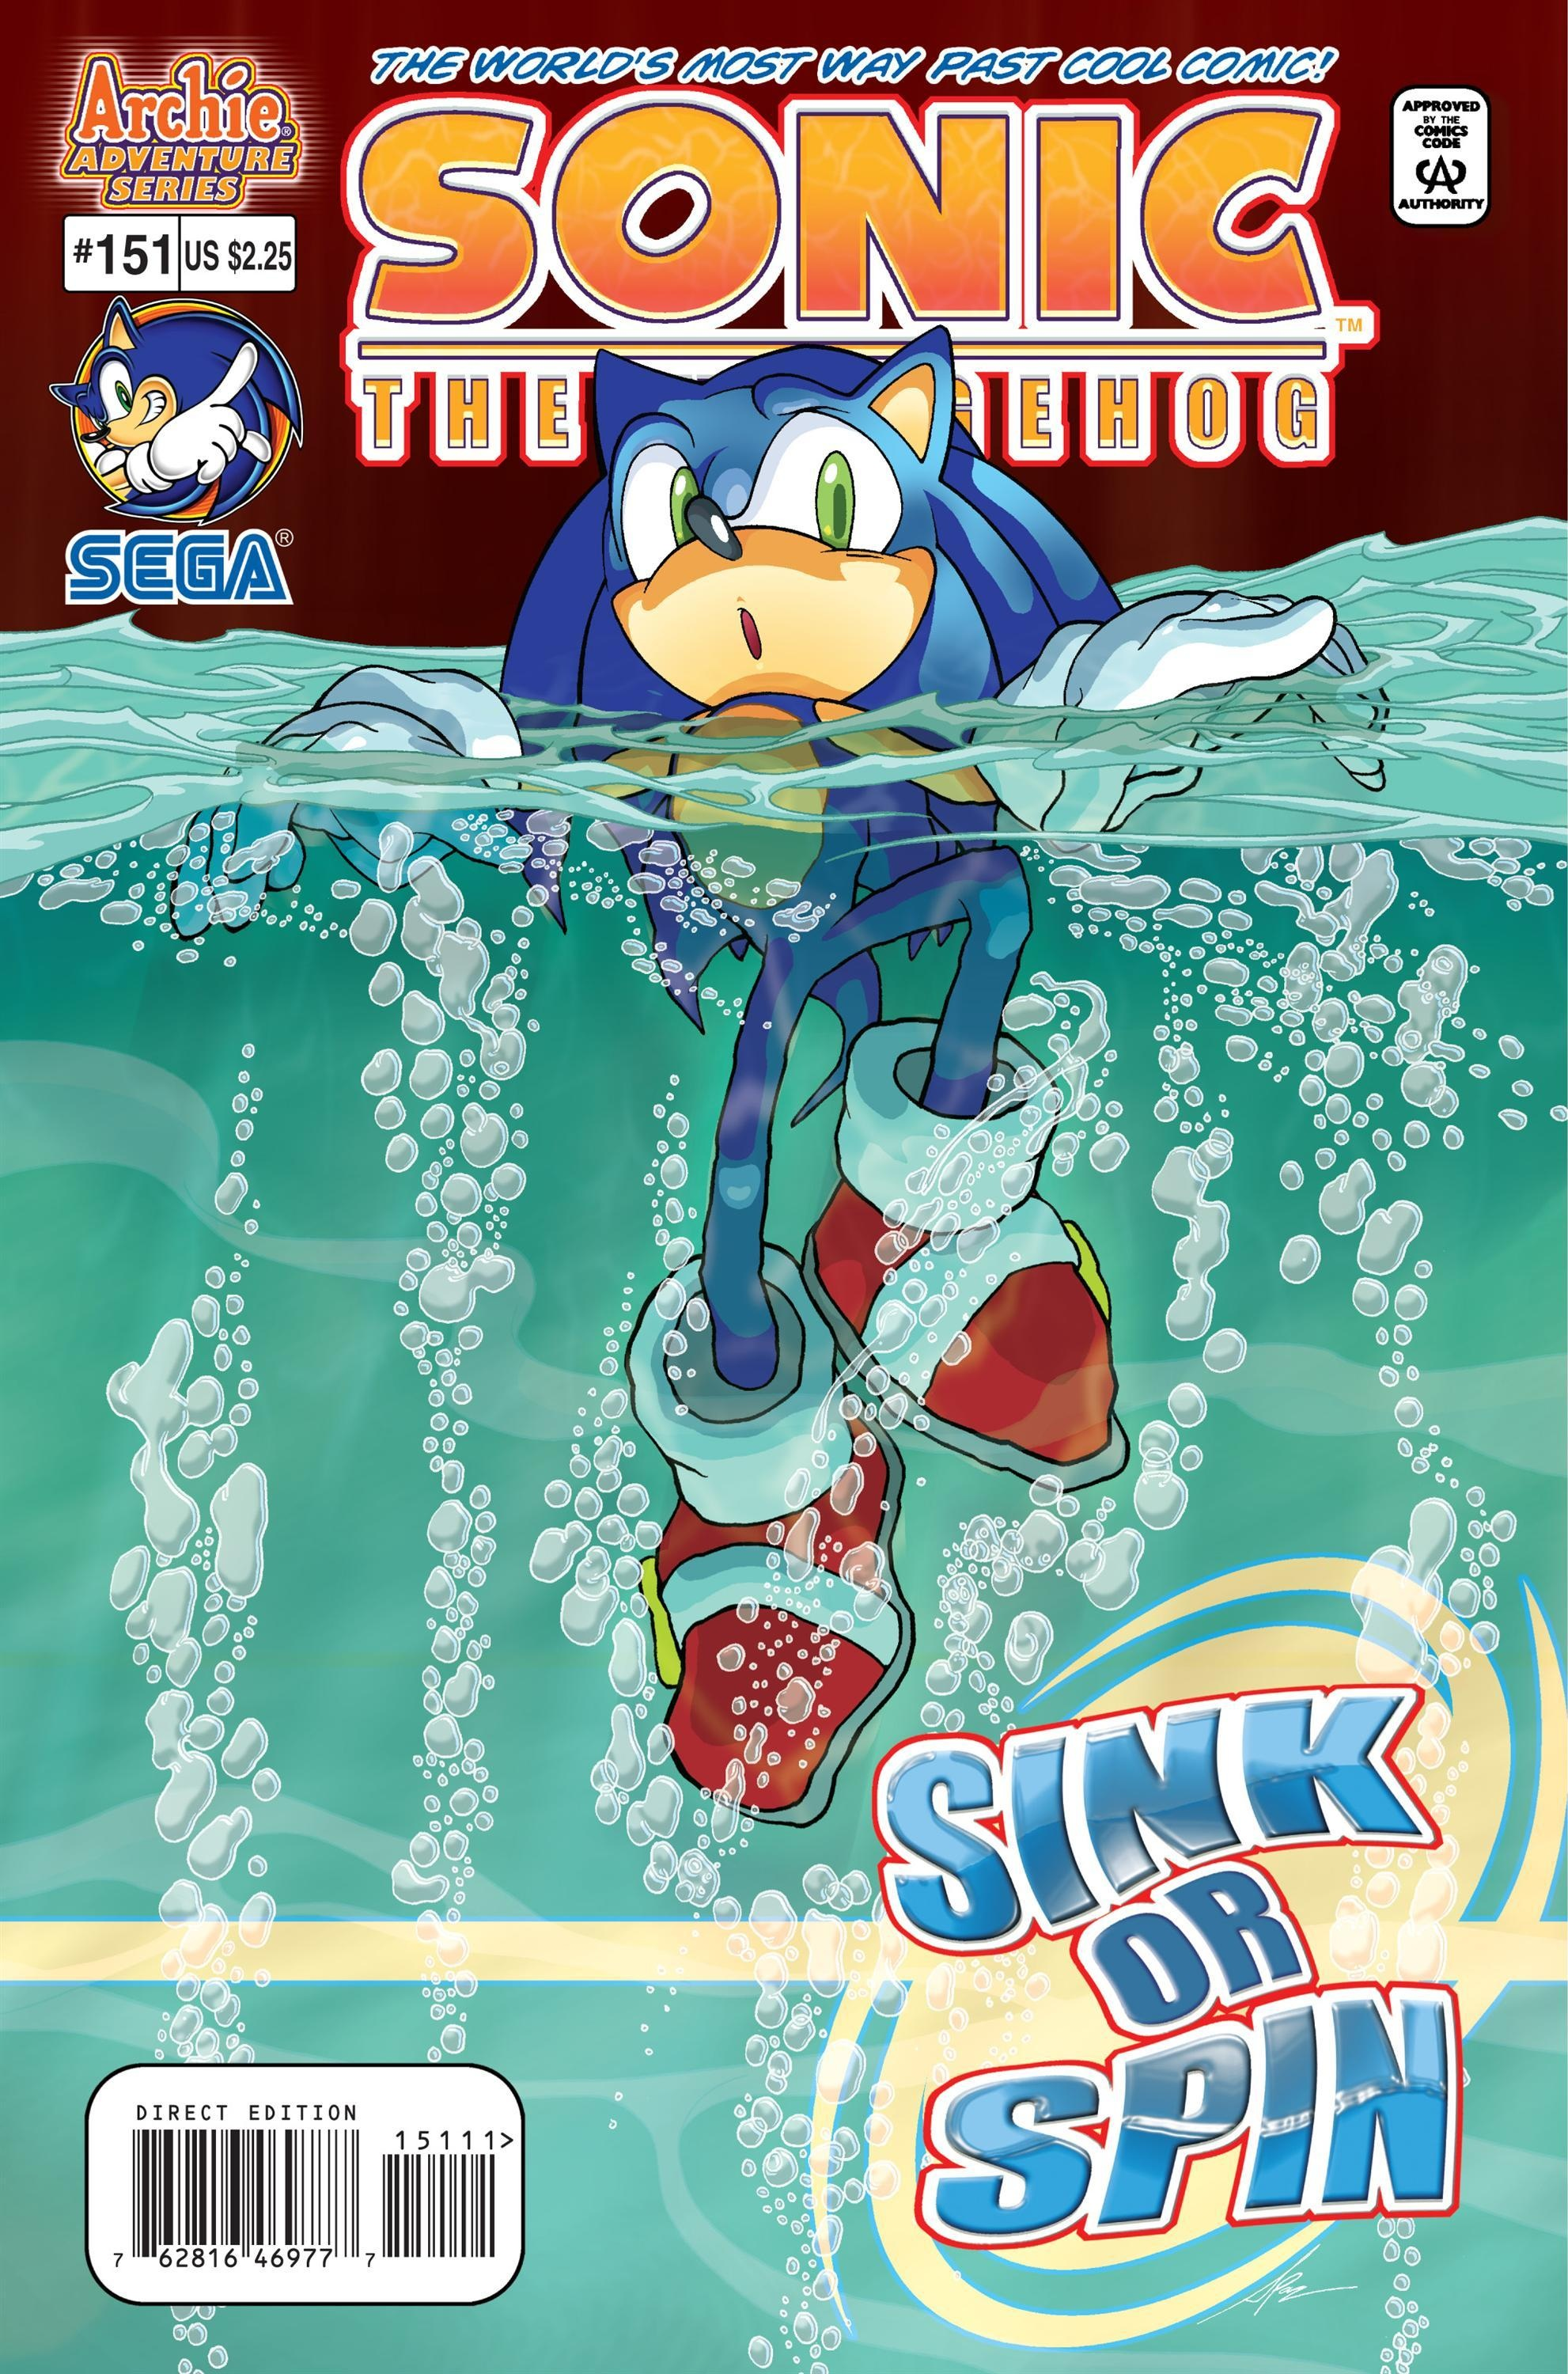 Archie Sonic the Hedgehog Issue 151